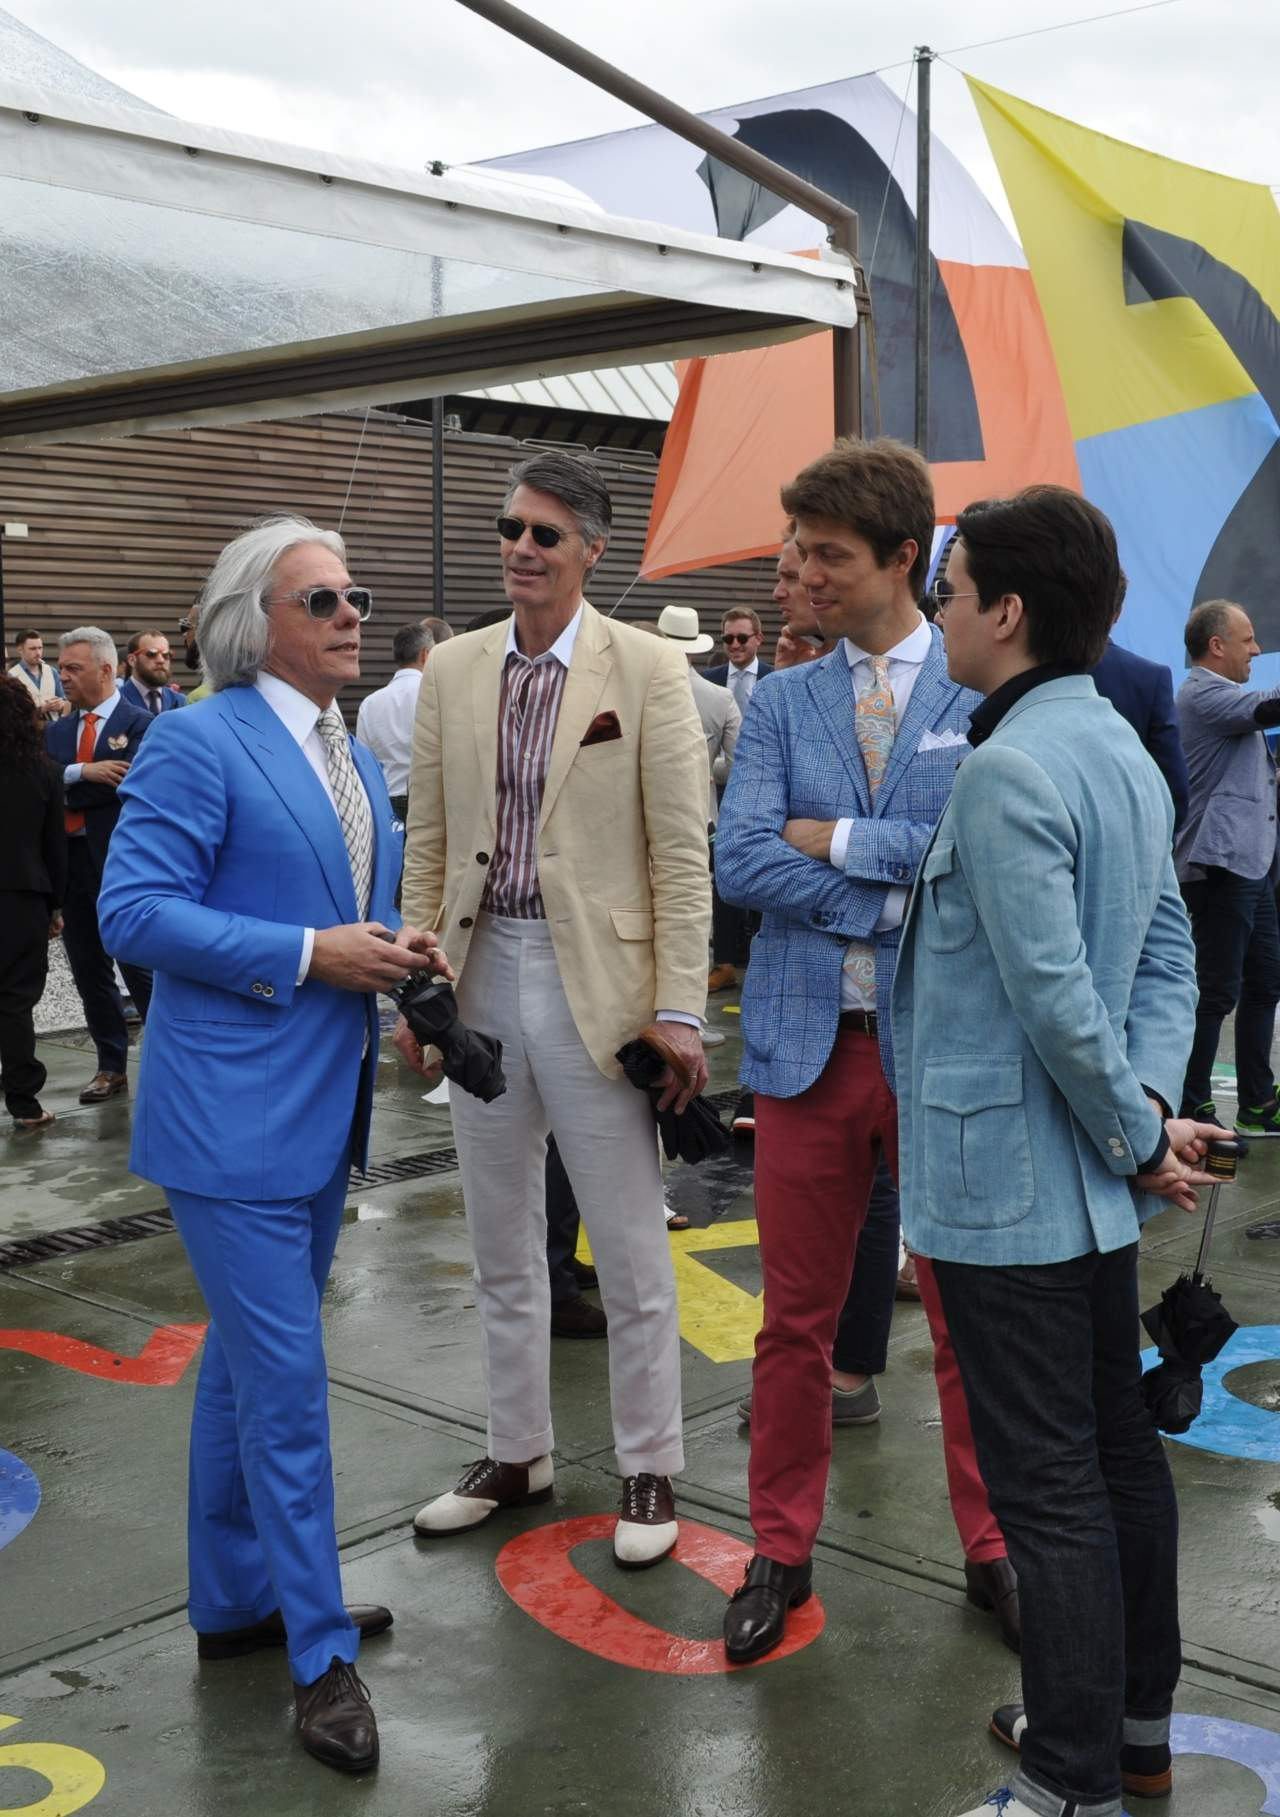 pitti 90 day 1 blue